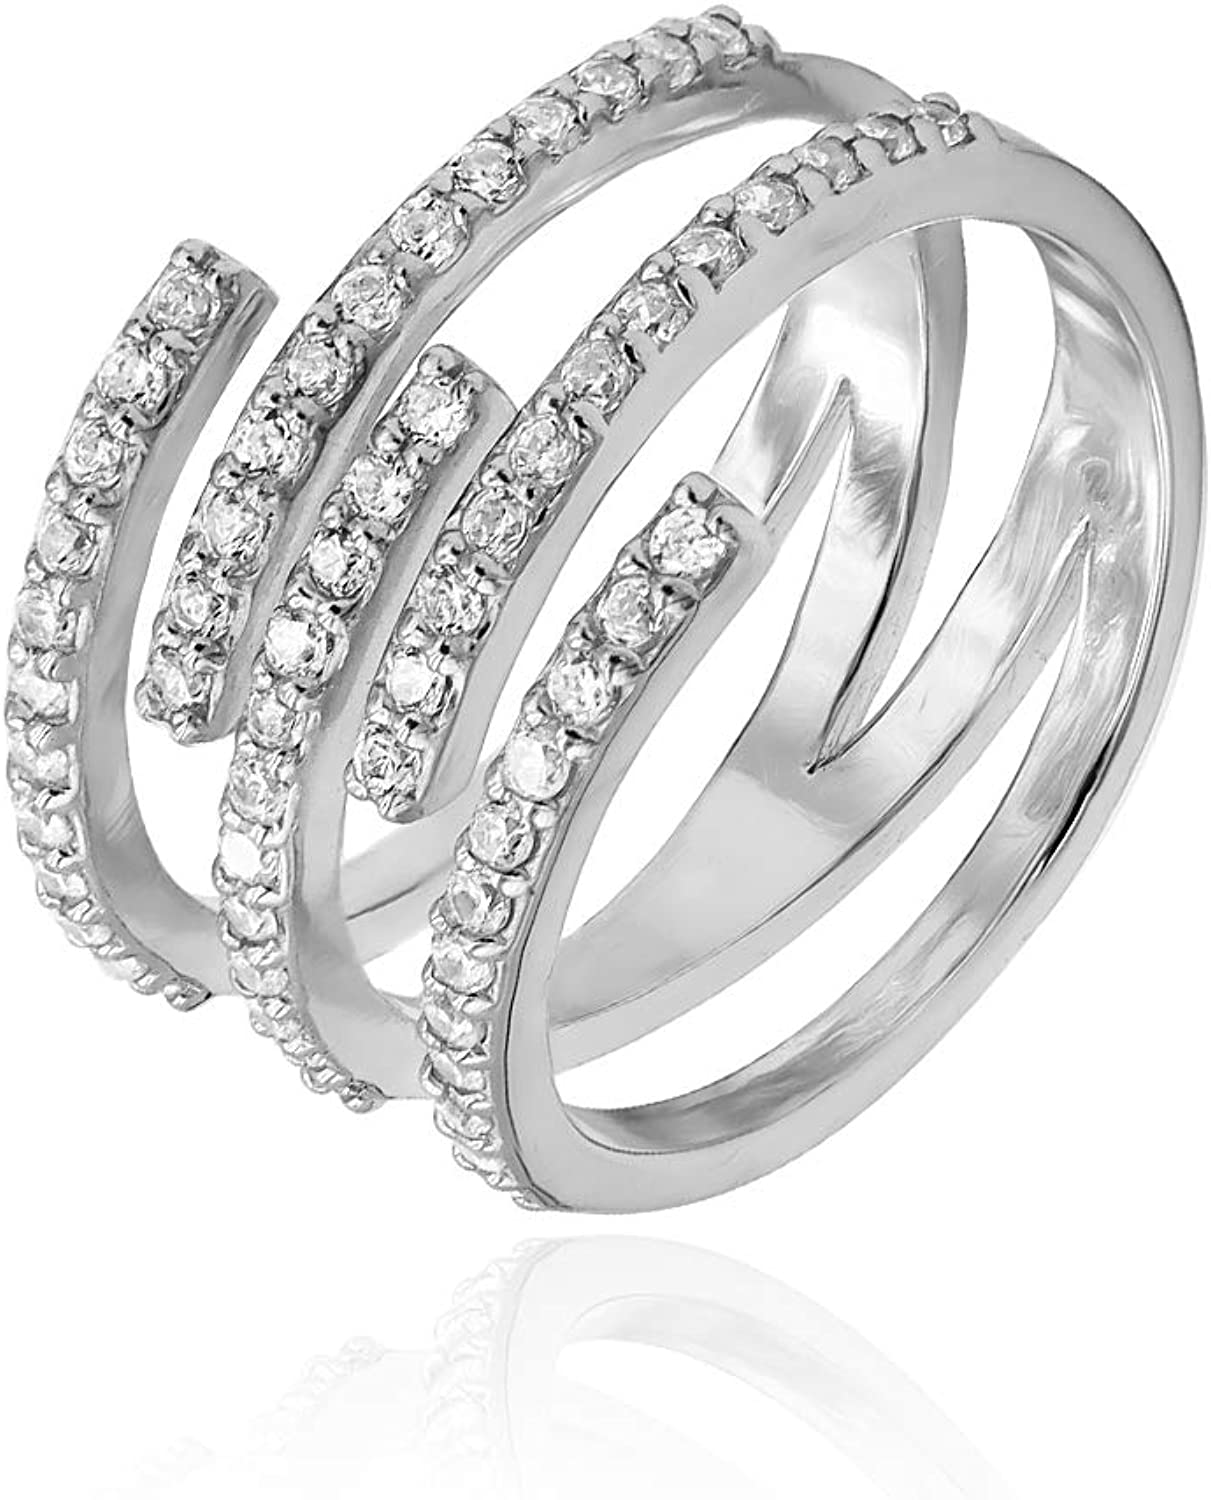 Sterling Silver CZ Cubic Zirconia Spiral Statement Ring Engagement Wedding Valentine Day,Womens Day New Year Size 5-9 for Christmas